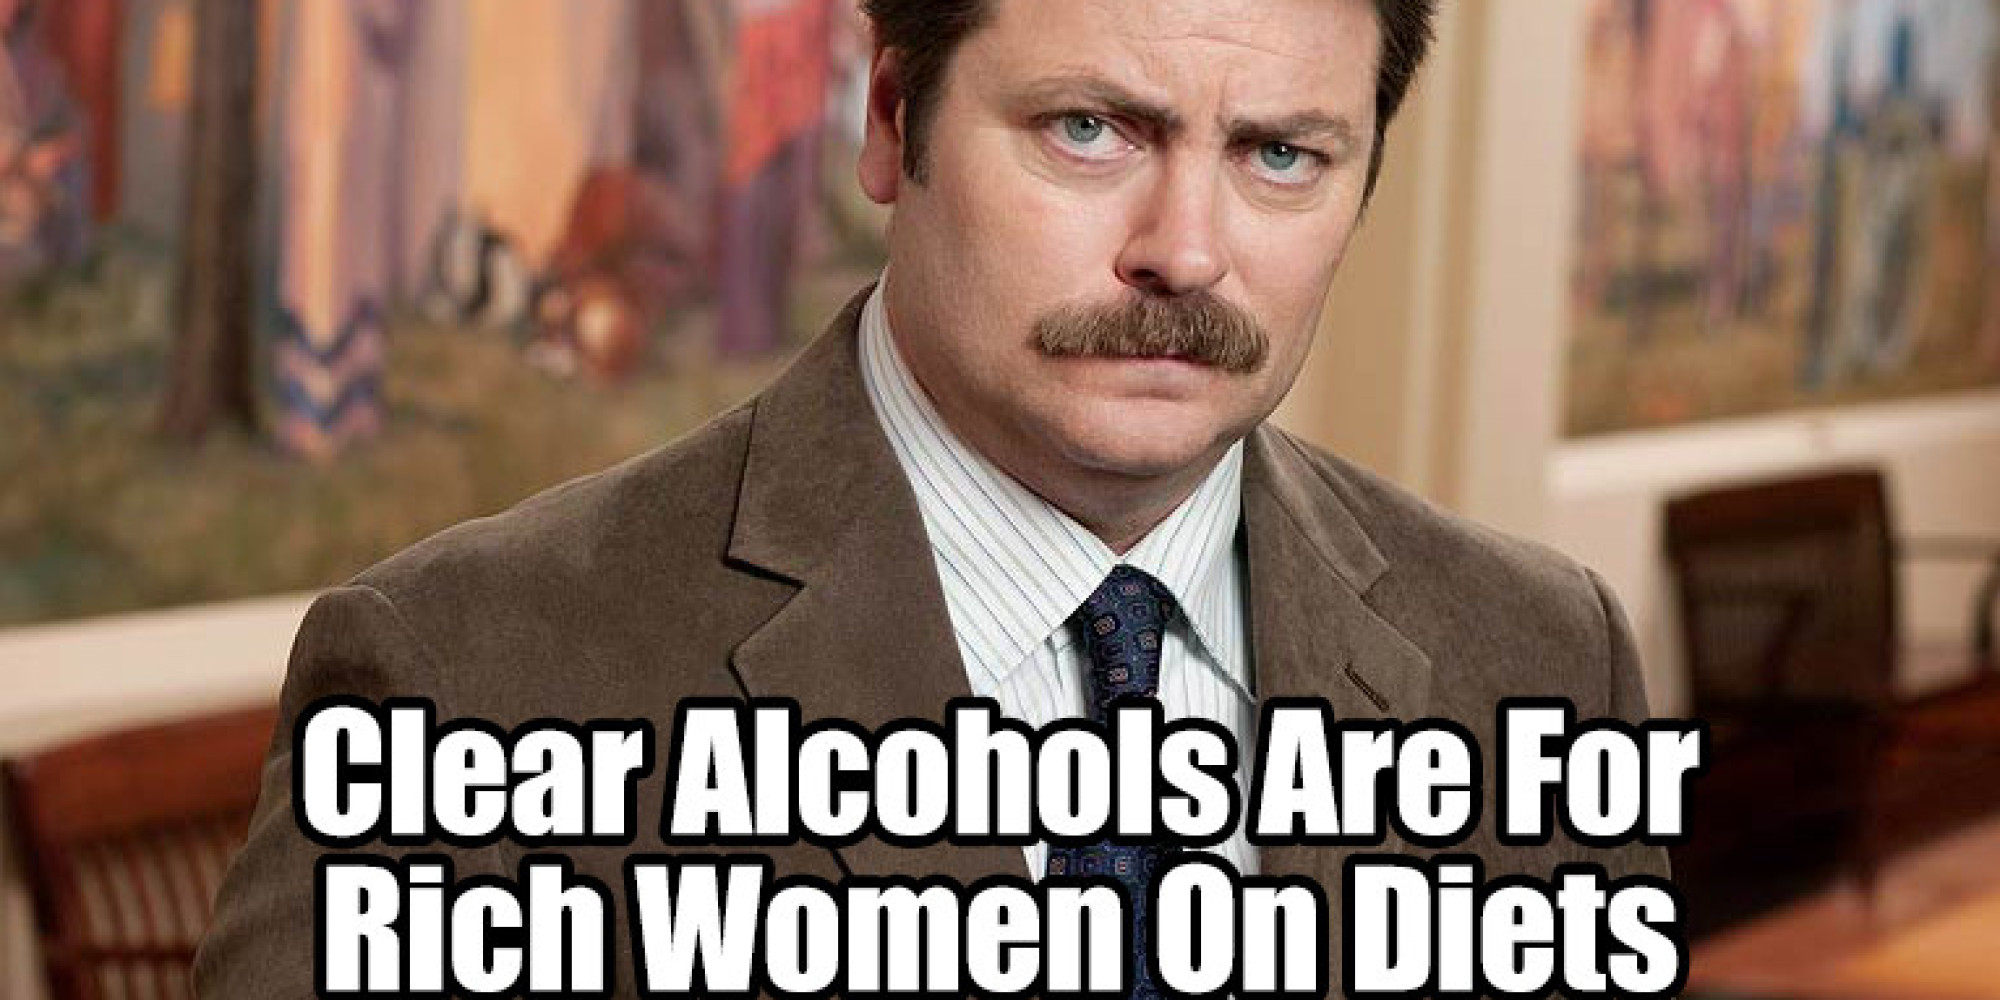 clear-alcohols-are-for-rich-women-on-diets.jpg